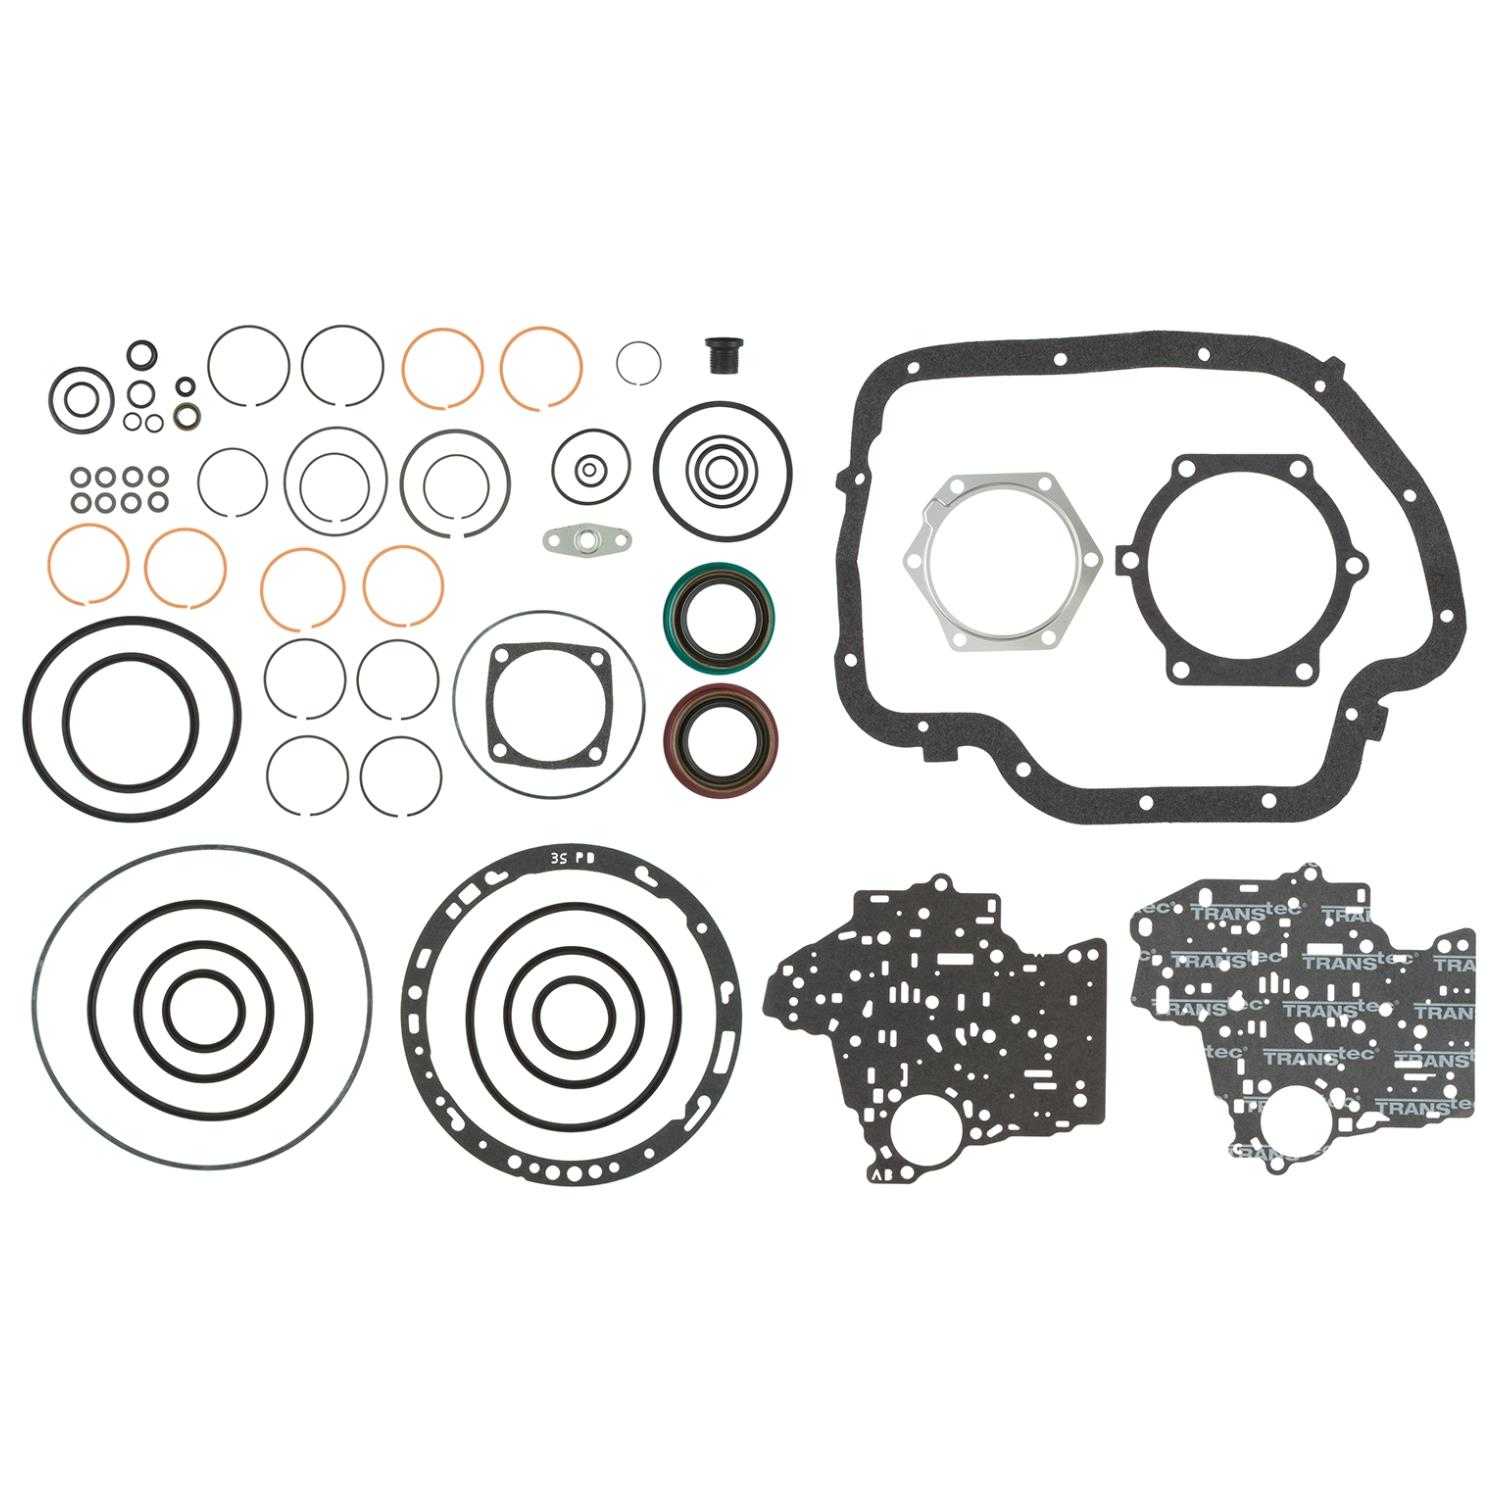 ATP Automotive JGS-52 Overhaul Kit